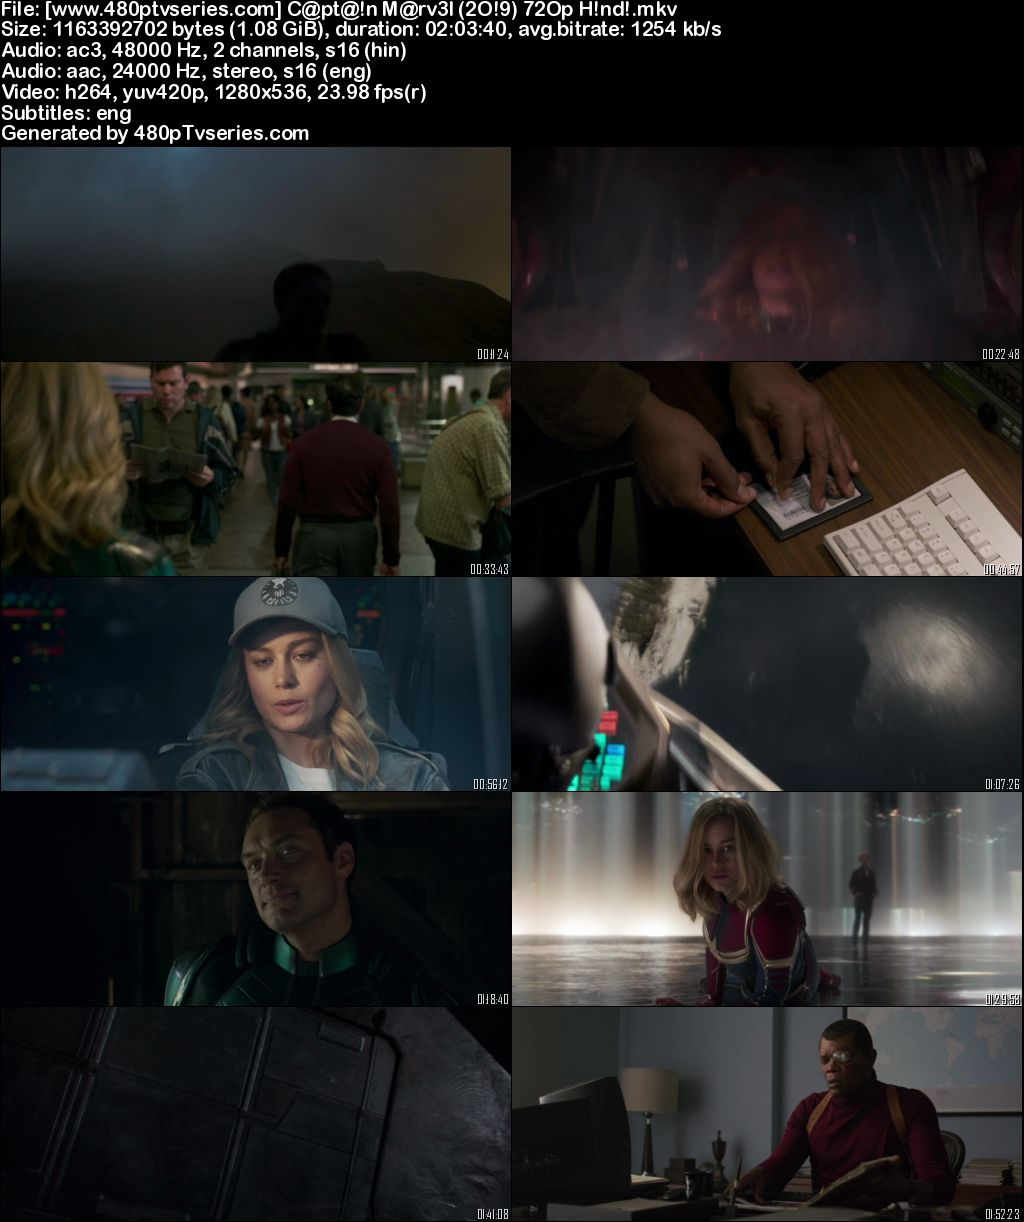 Watch Online Free Captain Marvel (2019) Full Hindi Dual Audio Movie Download 480p 720p Web-DL